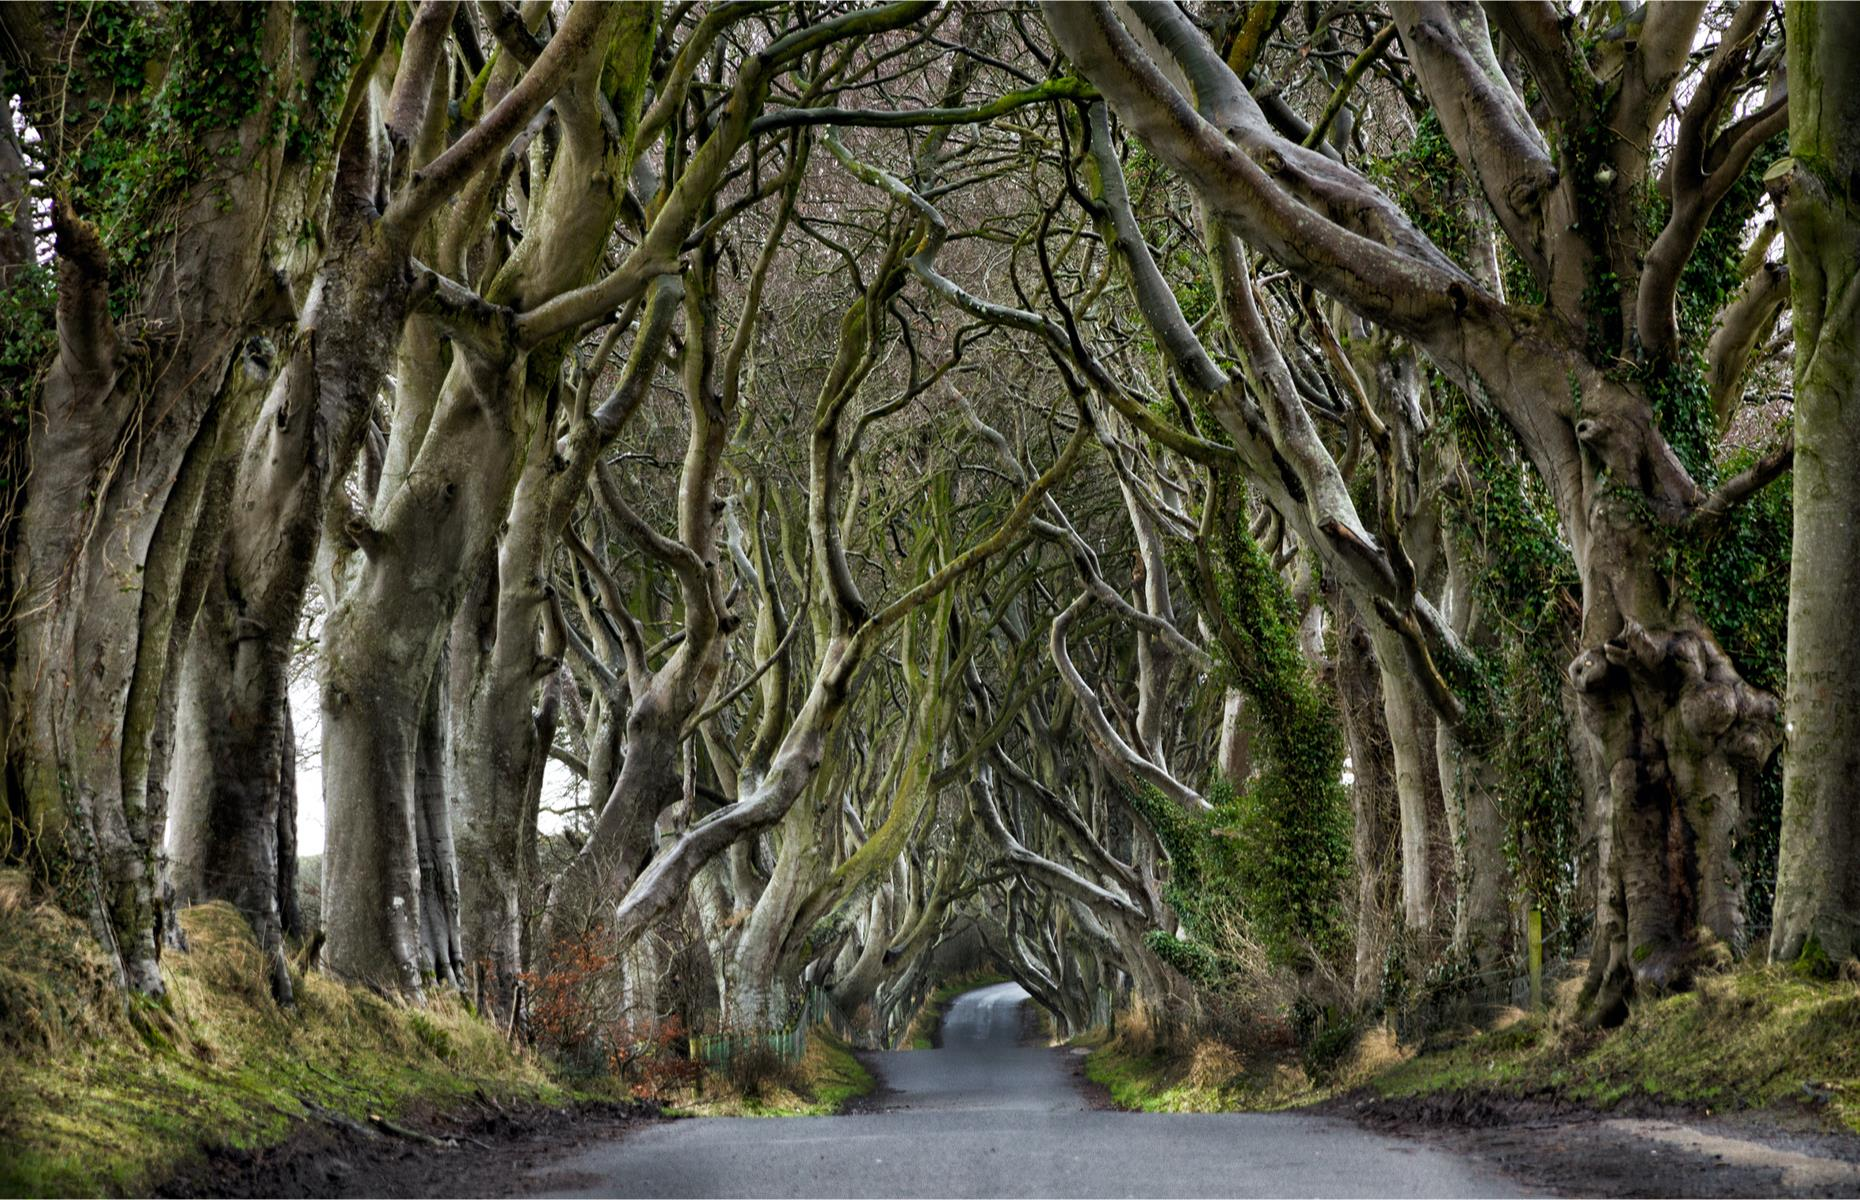 Slide 4 of 31: This haunting tunnel of beech trees in Country Antrim known as the Dark Hedges shot to worldwide fame when it was used as the location for the Kingsroad in HBO's Game of Thrones. The deciduous trees were originally planted in the 18th century by the Stuart family to create an awe-inspiring entrance to their grand mansion, Gracehill House. Today the ethereal feature encloses a section of the Bregagh Road, near Armoy. It's a public road although traffic bans have been imposed due to overcrowding.